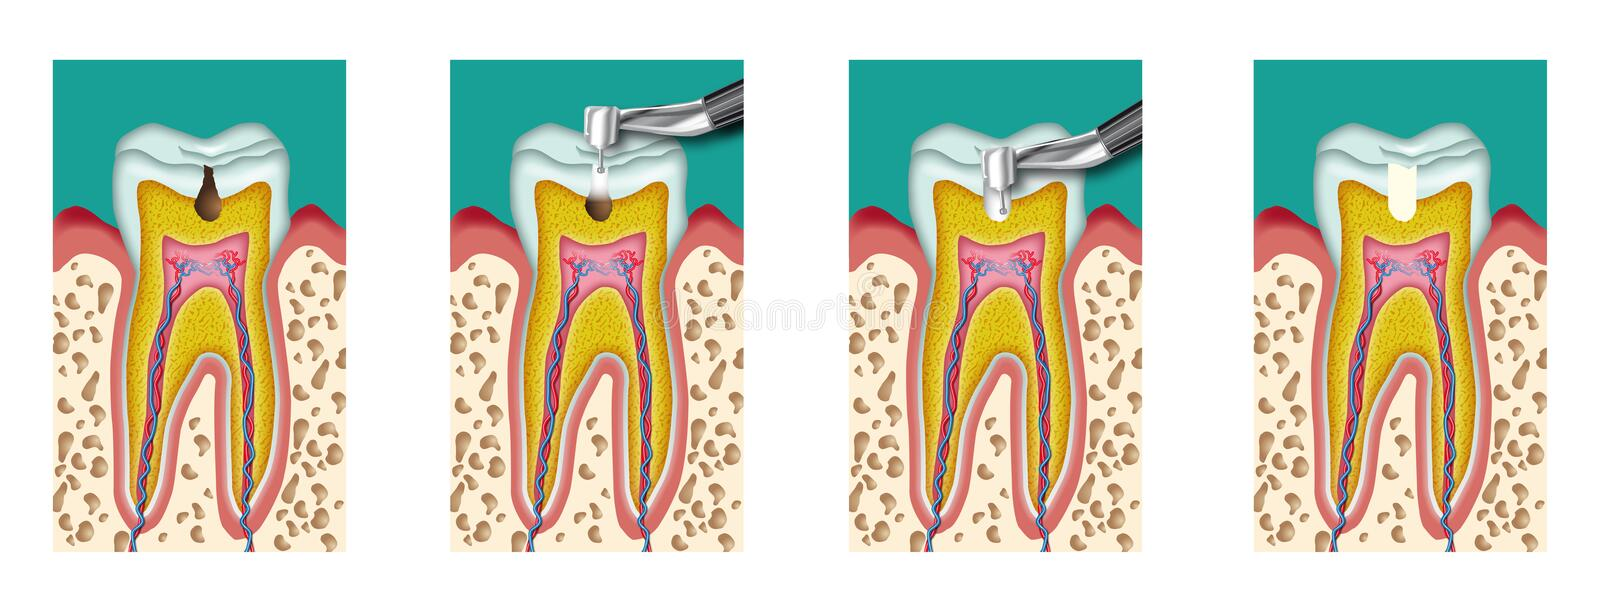 Caries. Dental caries dentistry intervention with drill four steps stock illustration